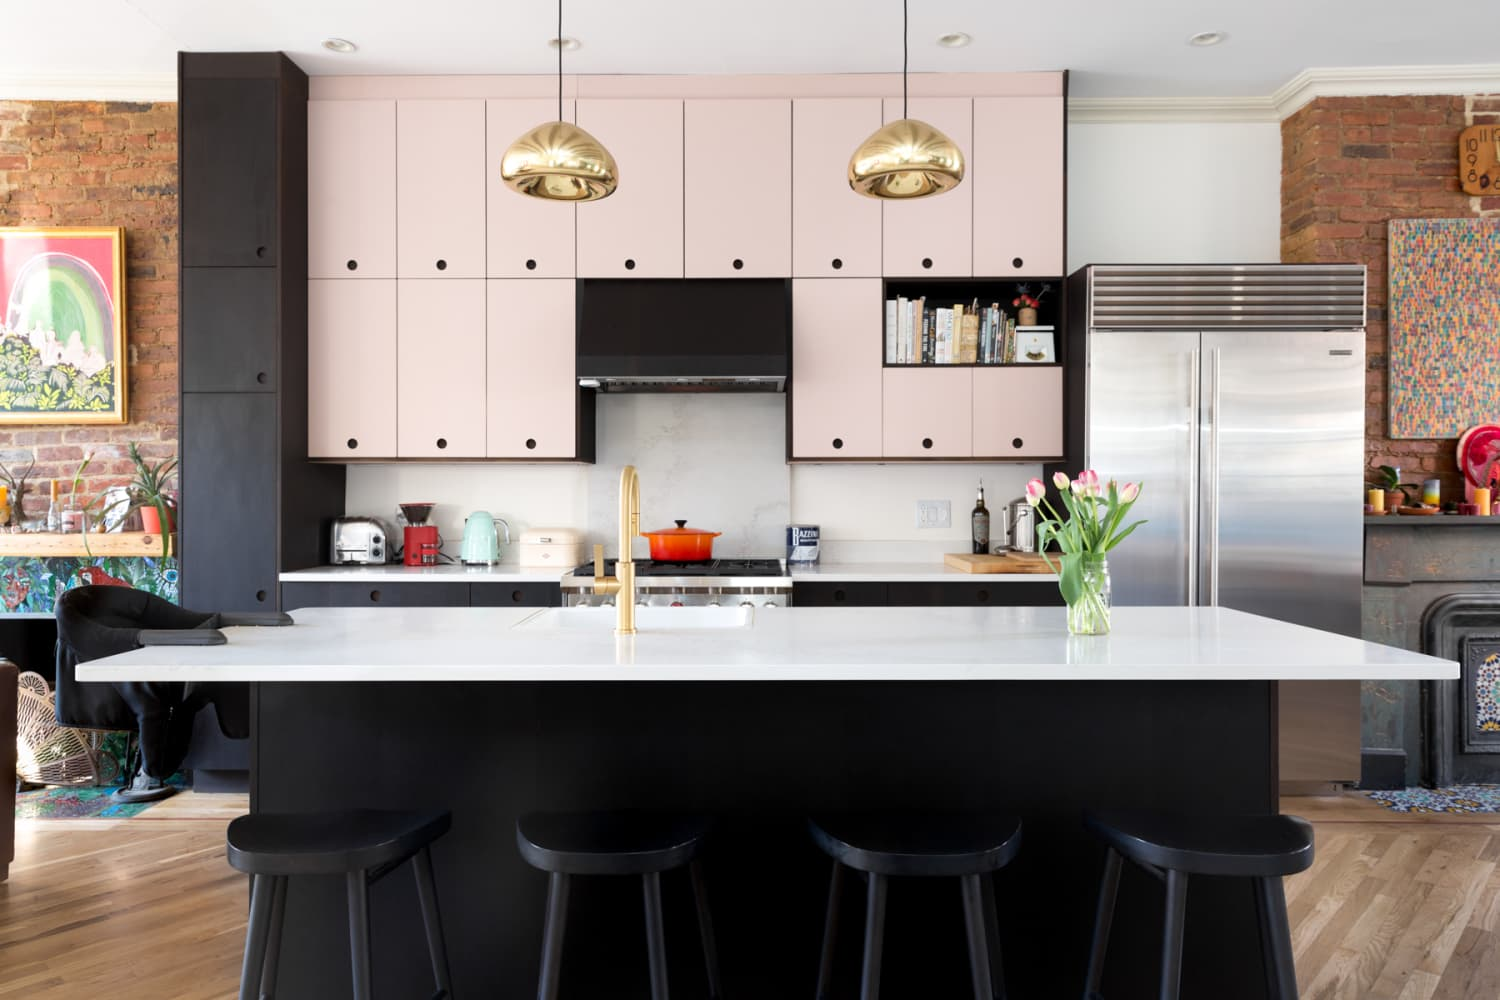 7 Low-Cost (or Free!) Kitchen Staging Ideas Real Estate Experts Swear By